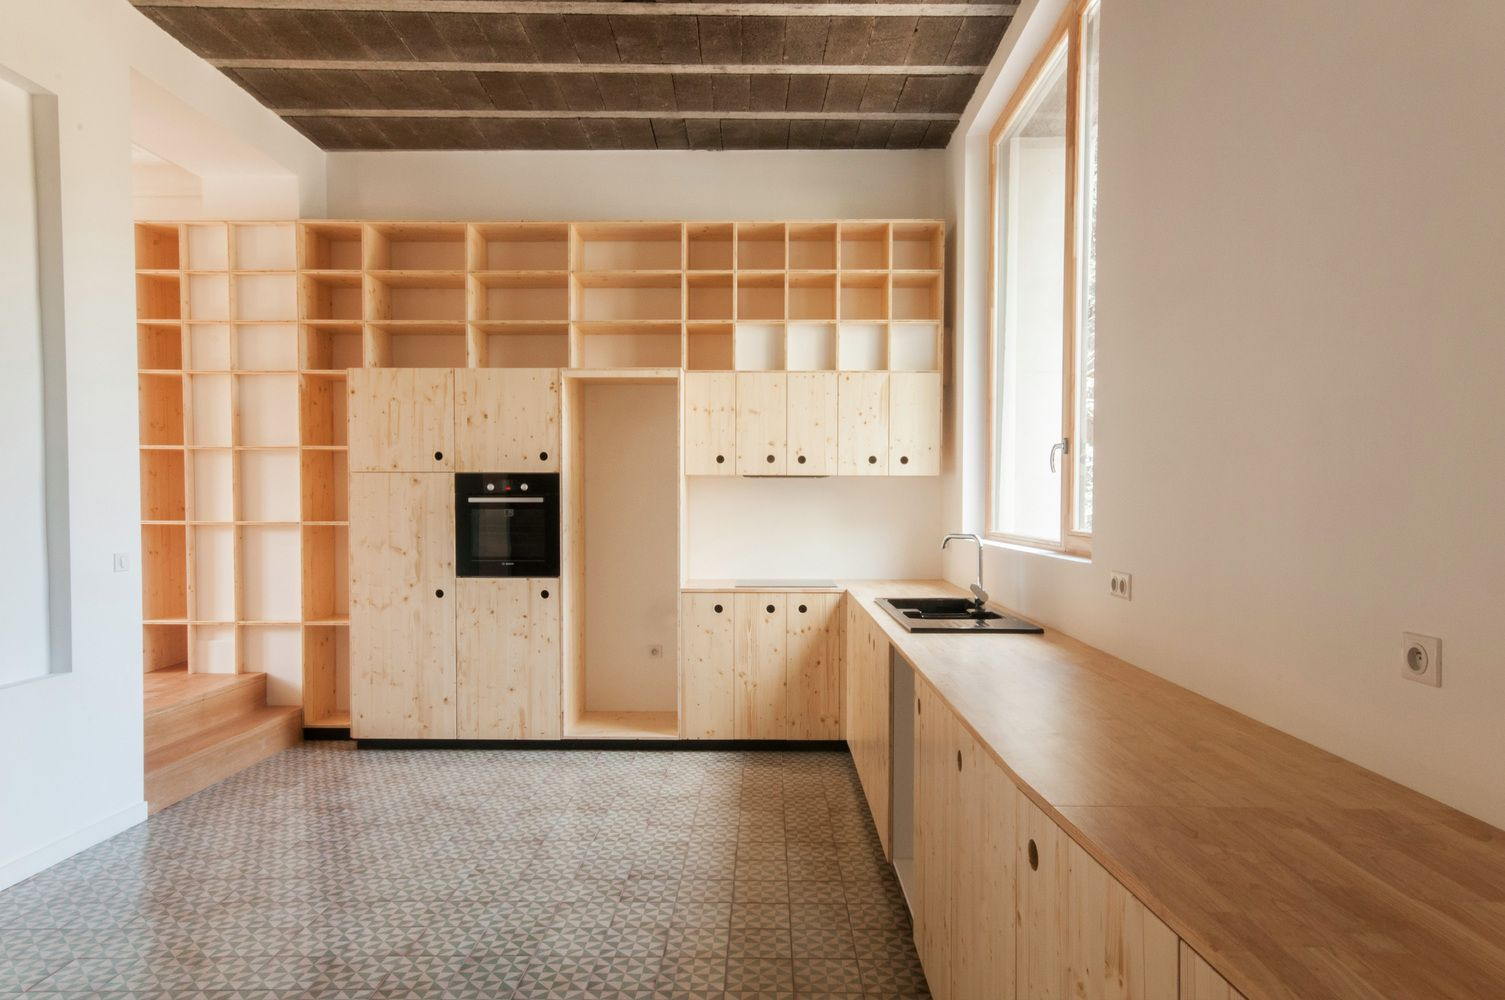 Gallery - House Renovation / studiolada architects - 5